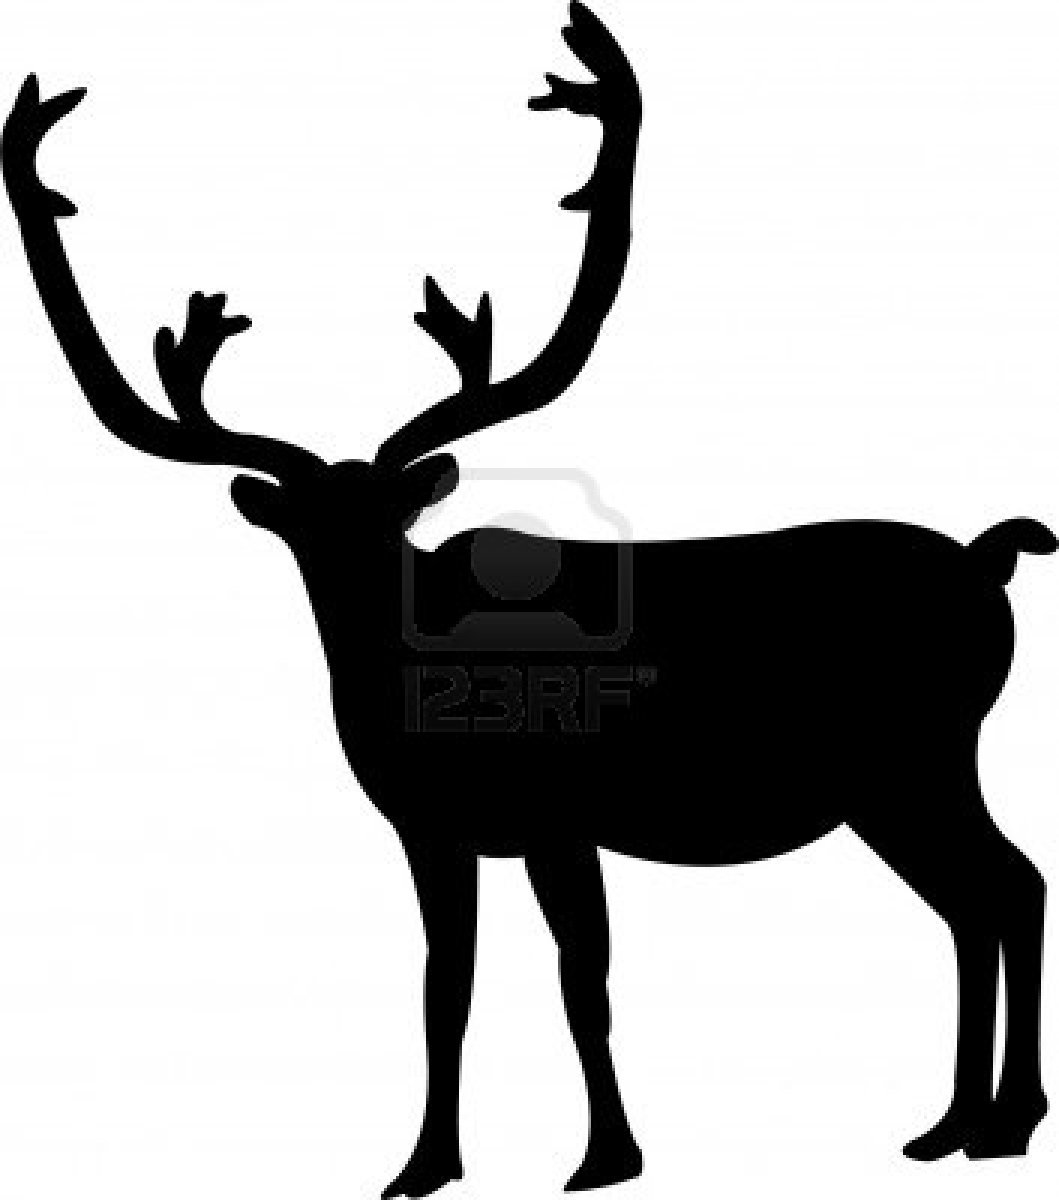 1059x1200 Caribou Outline Silhouette For Wool Stocking H O L I D A Y S